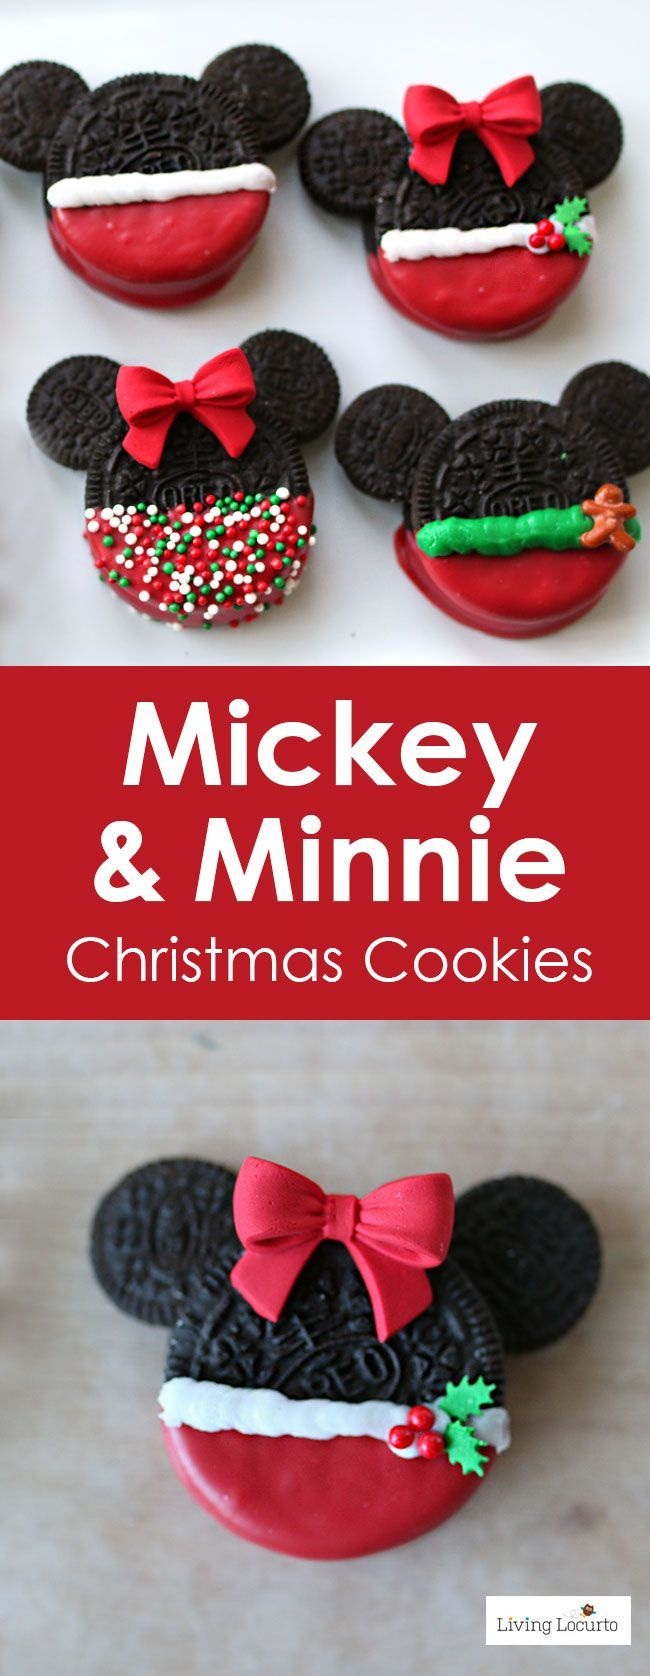 Adorable No Bake Mickey & Minnie Mouse Christmas Cookies made with Oreos. #Disney #Christmas #cookies